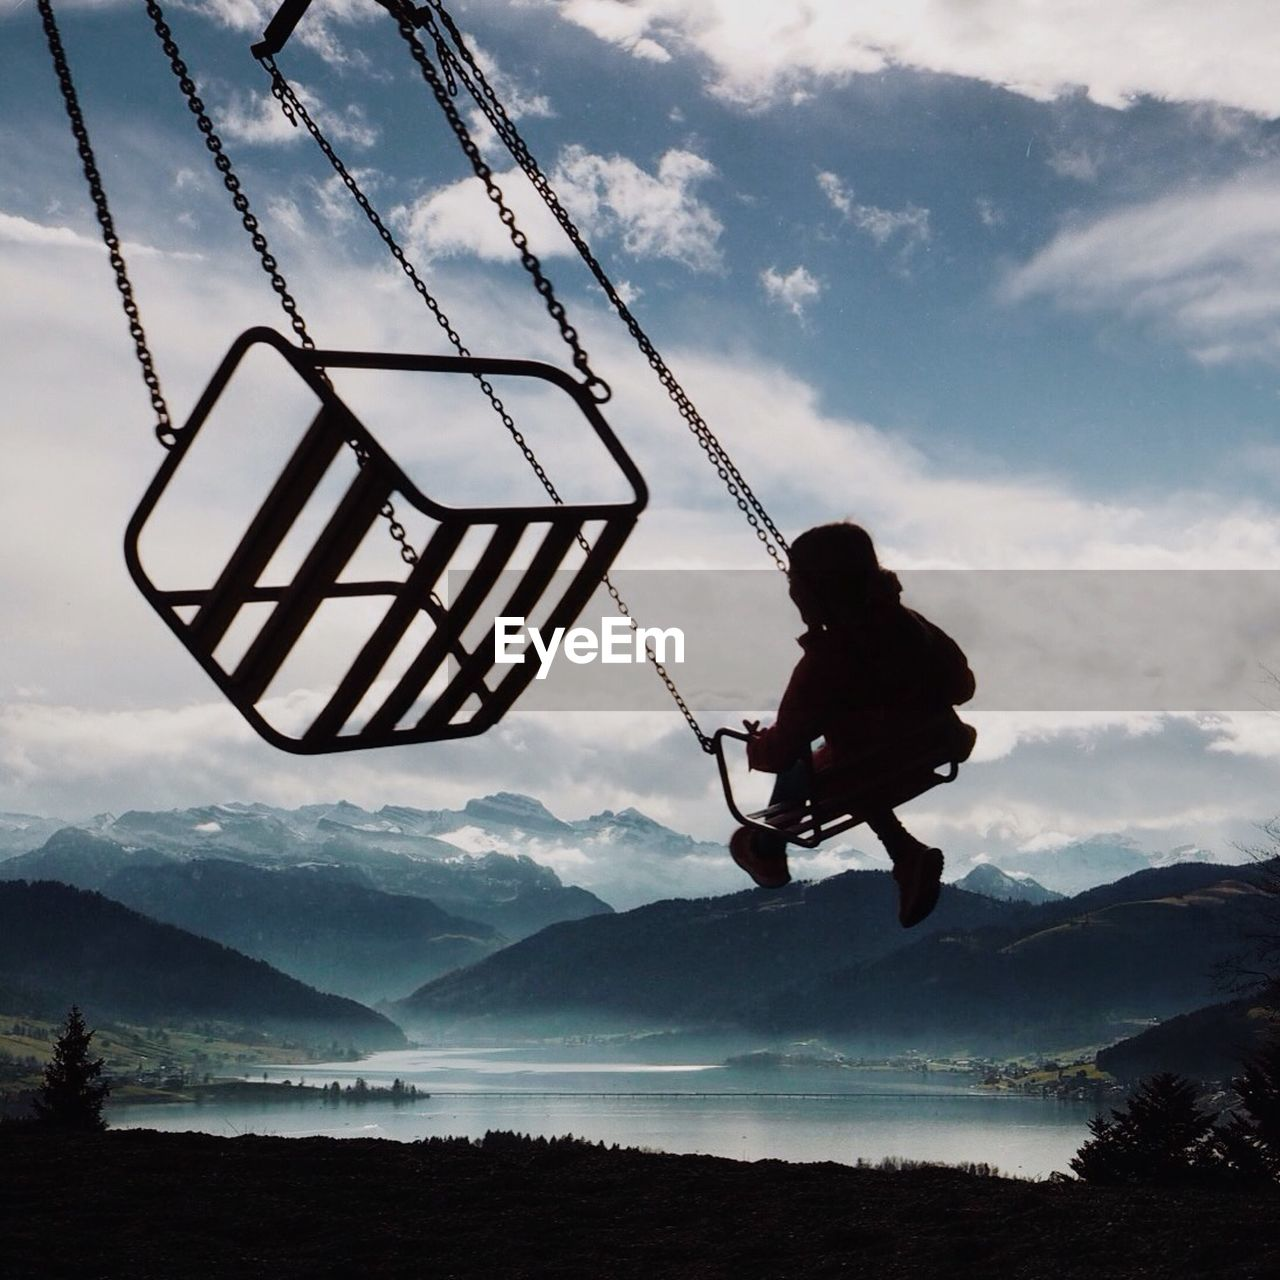 Child enjoying in chain swing ride in front of lake and mountains against cloudy sky